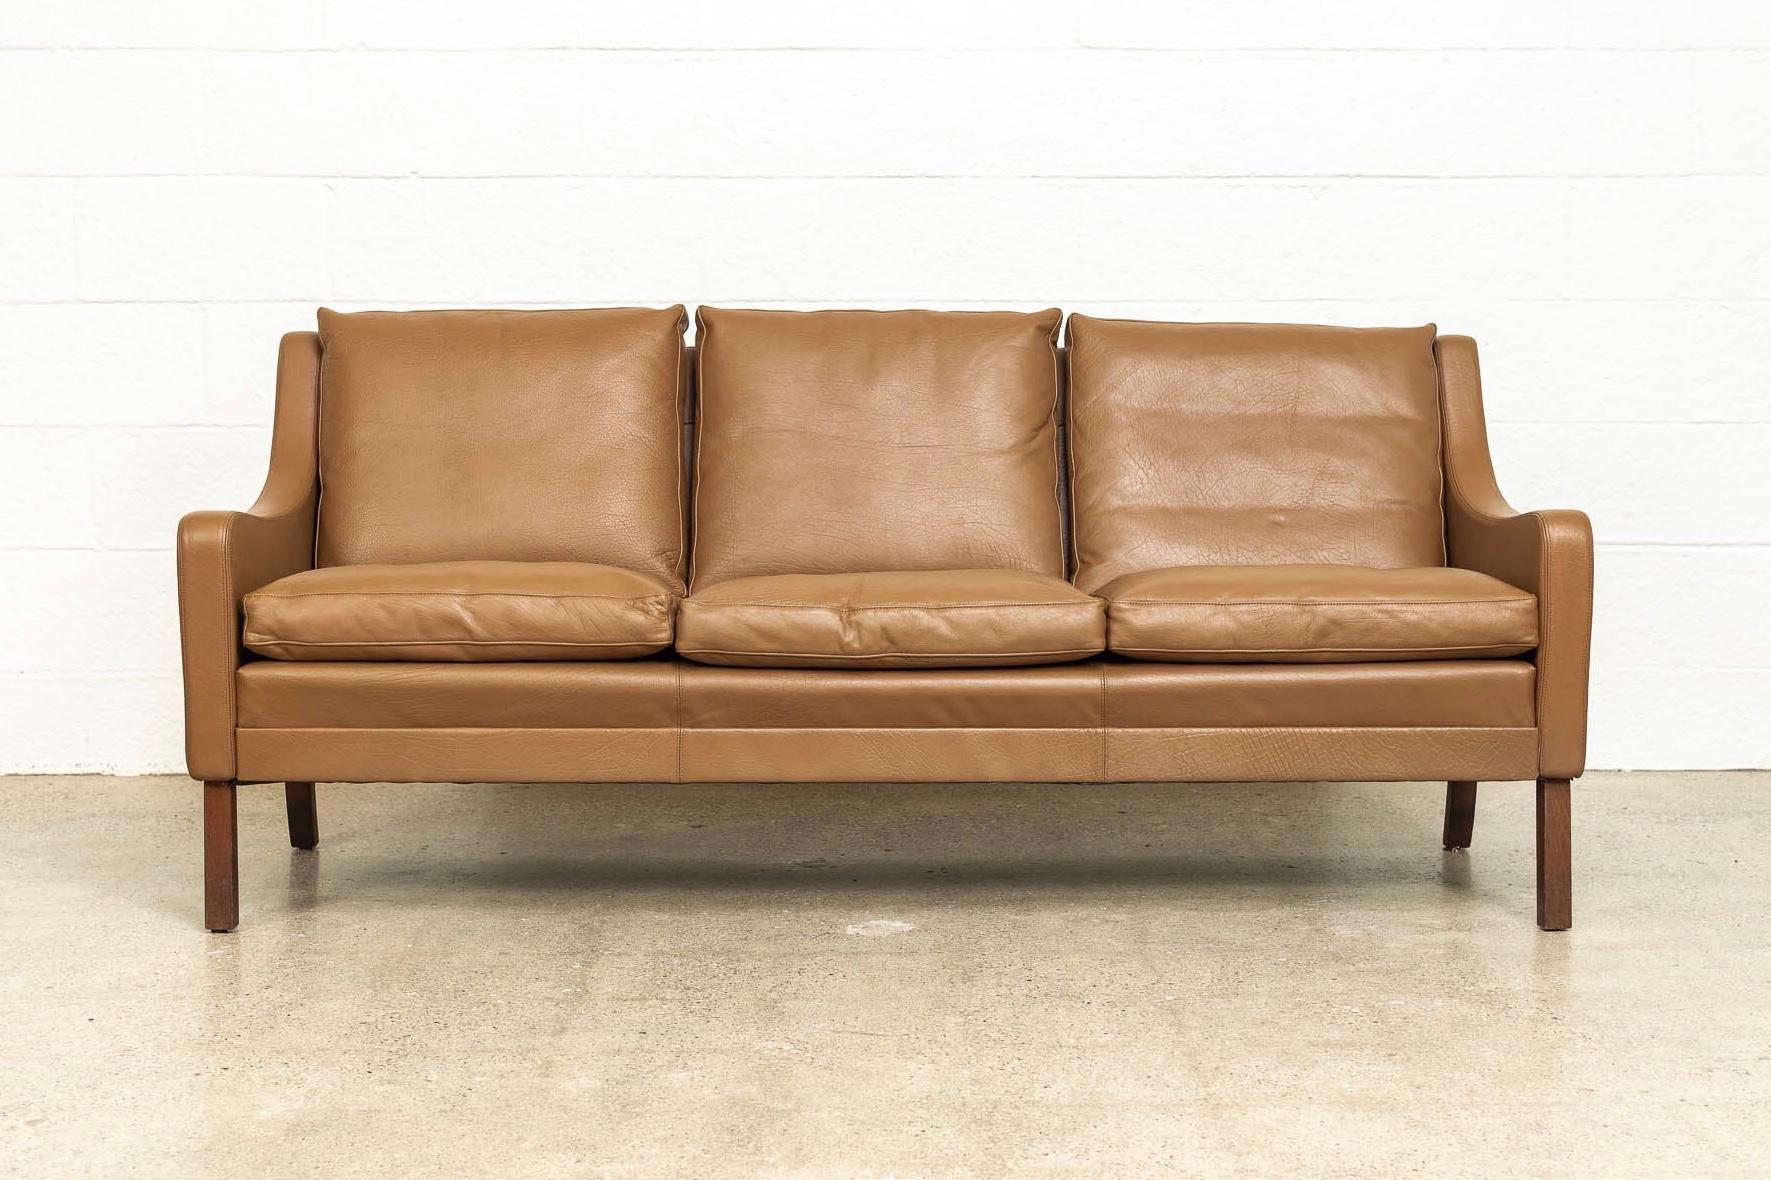 Vintage Midcentury Danish Modern Brown Leather Three Seat Sofa 1960s